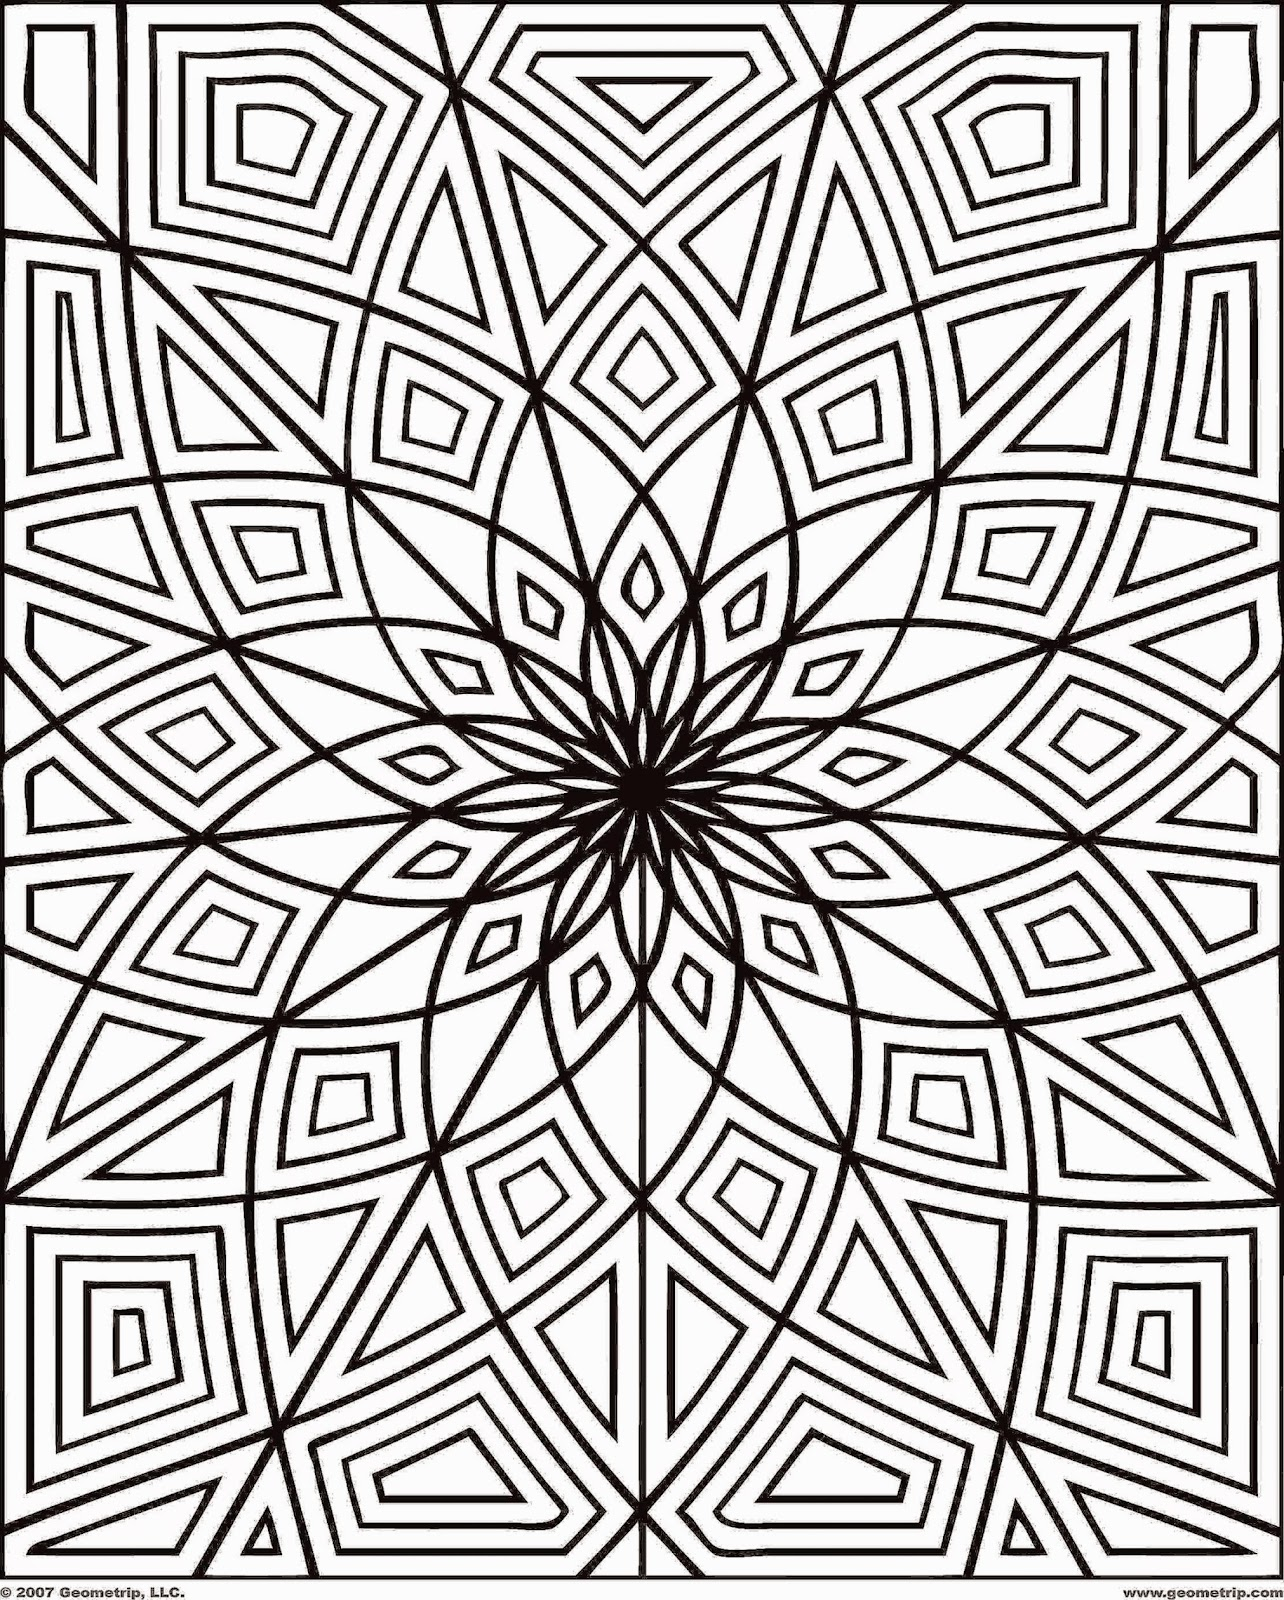 Printable Coloring Pages For Adults Free Coloring Sheet Coloring Pages For Adults Printable